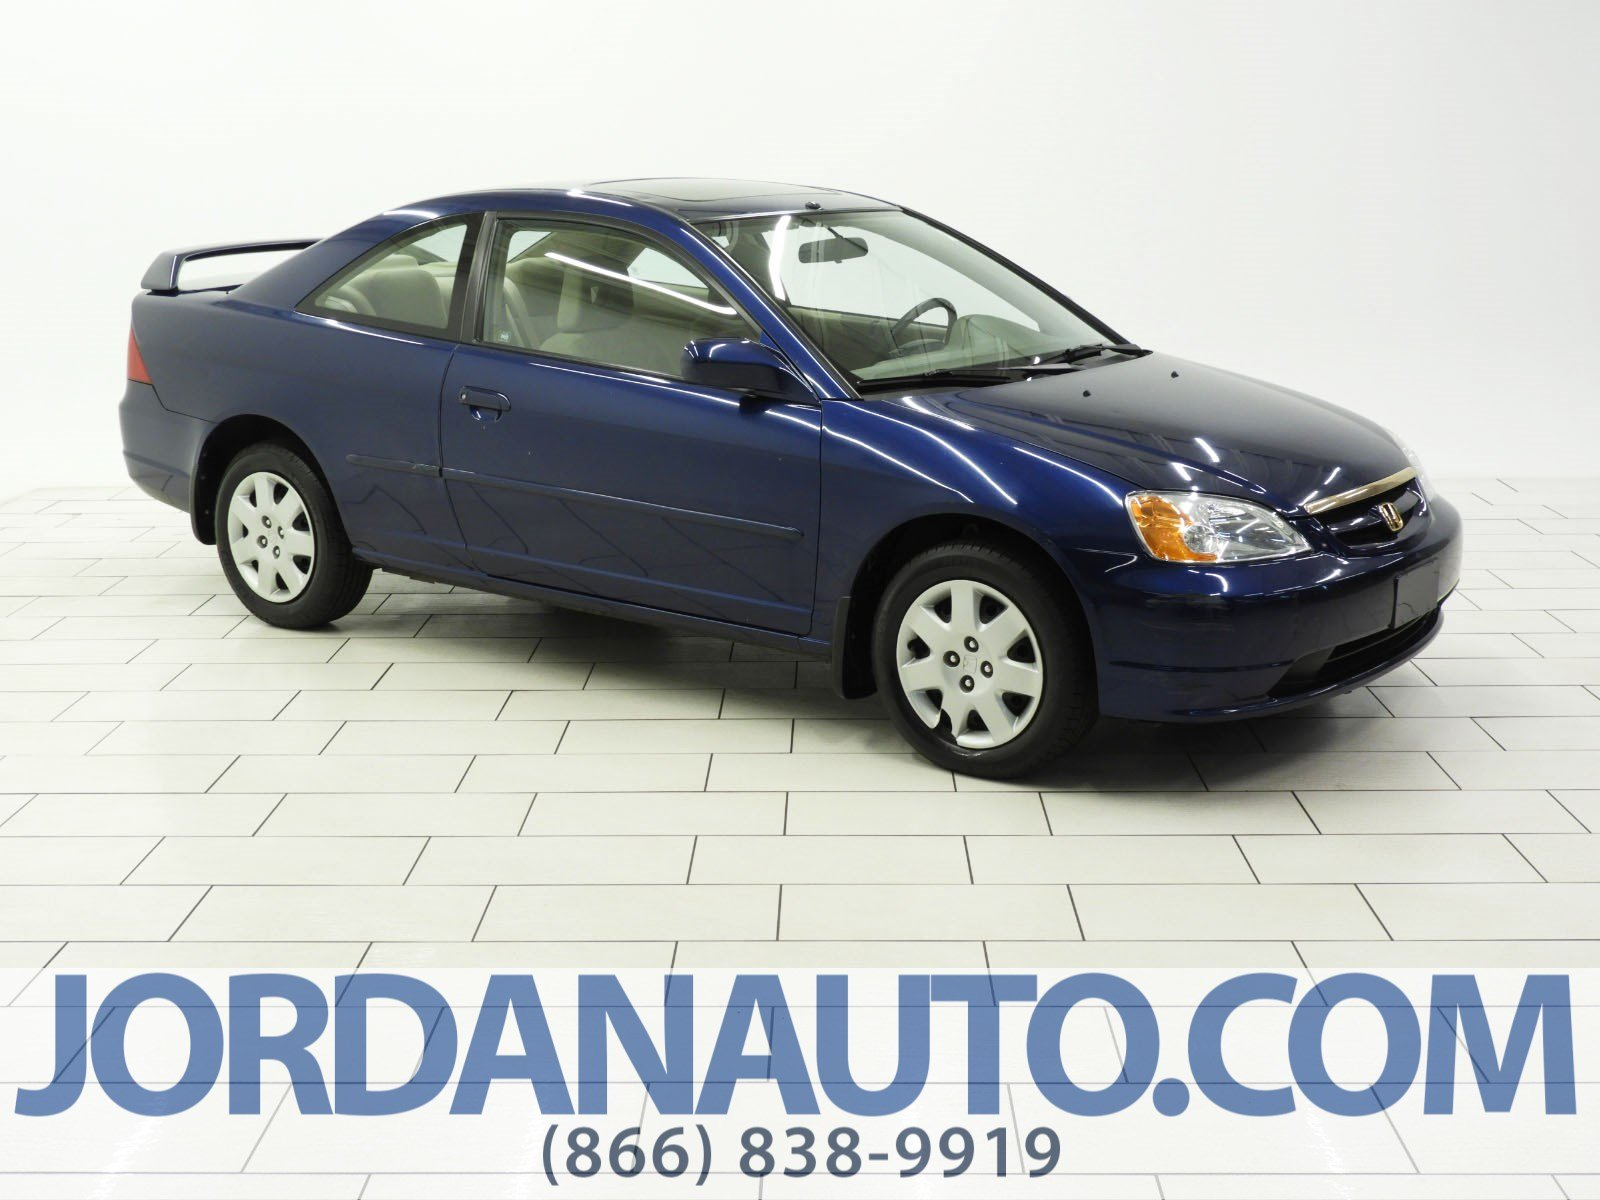 Pre-Owned 2001 Honda Civic EX